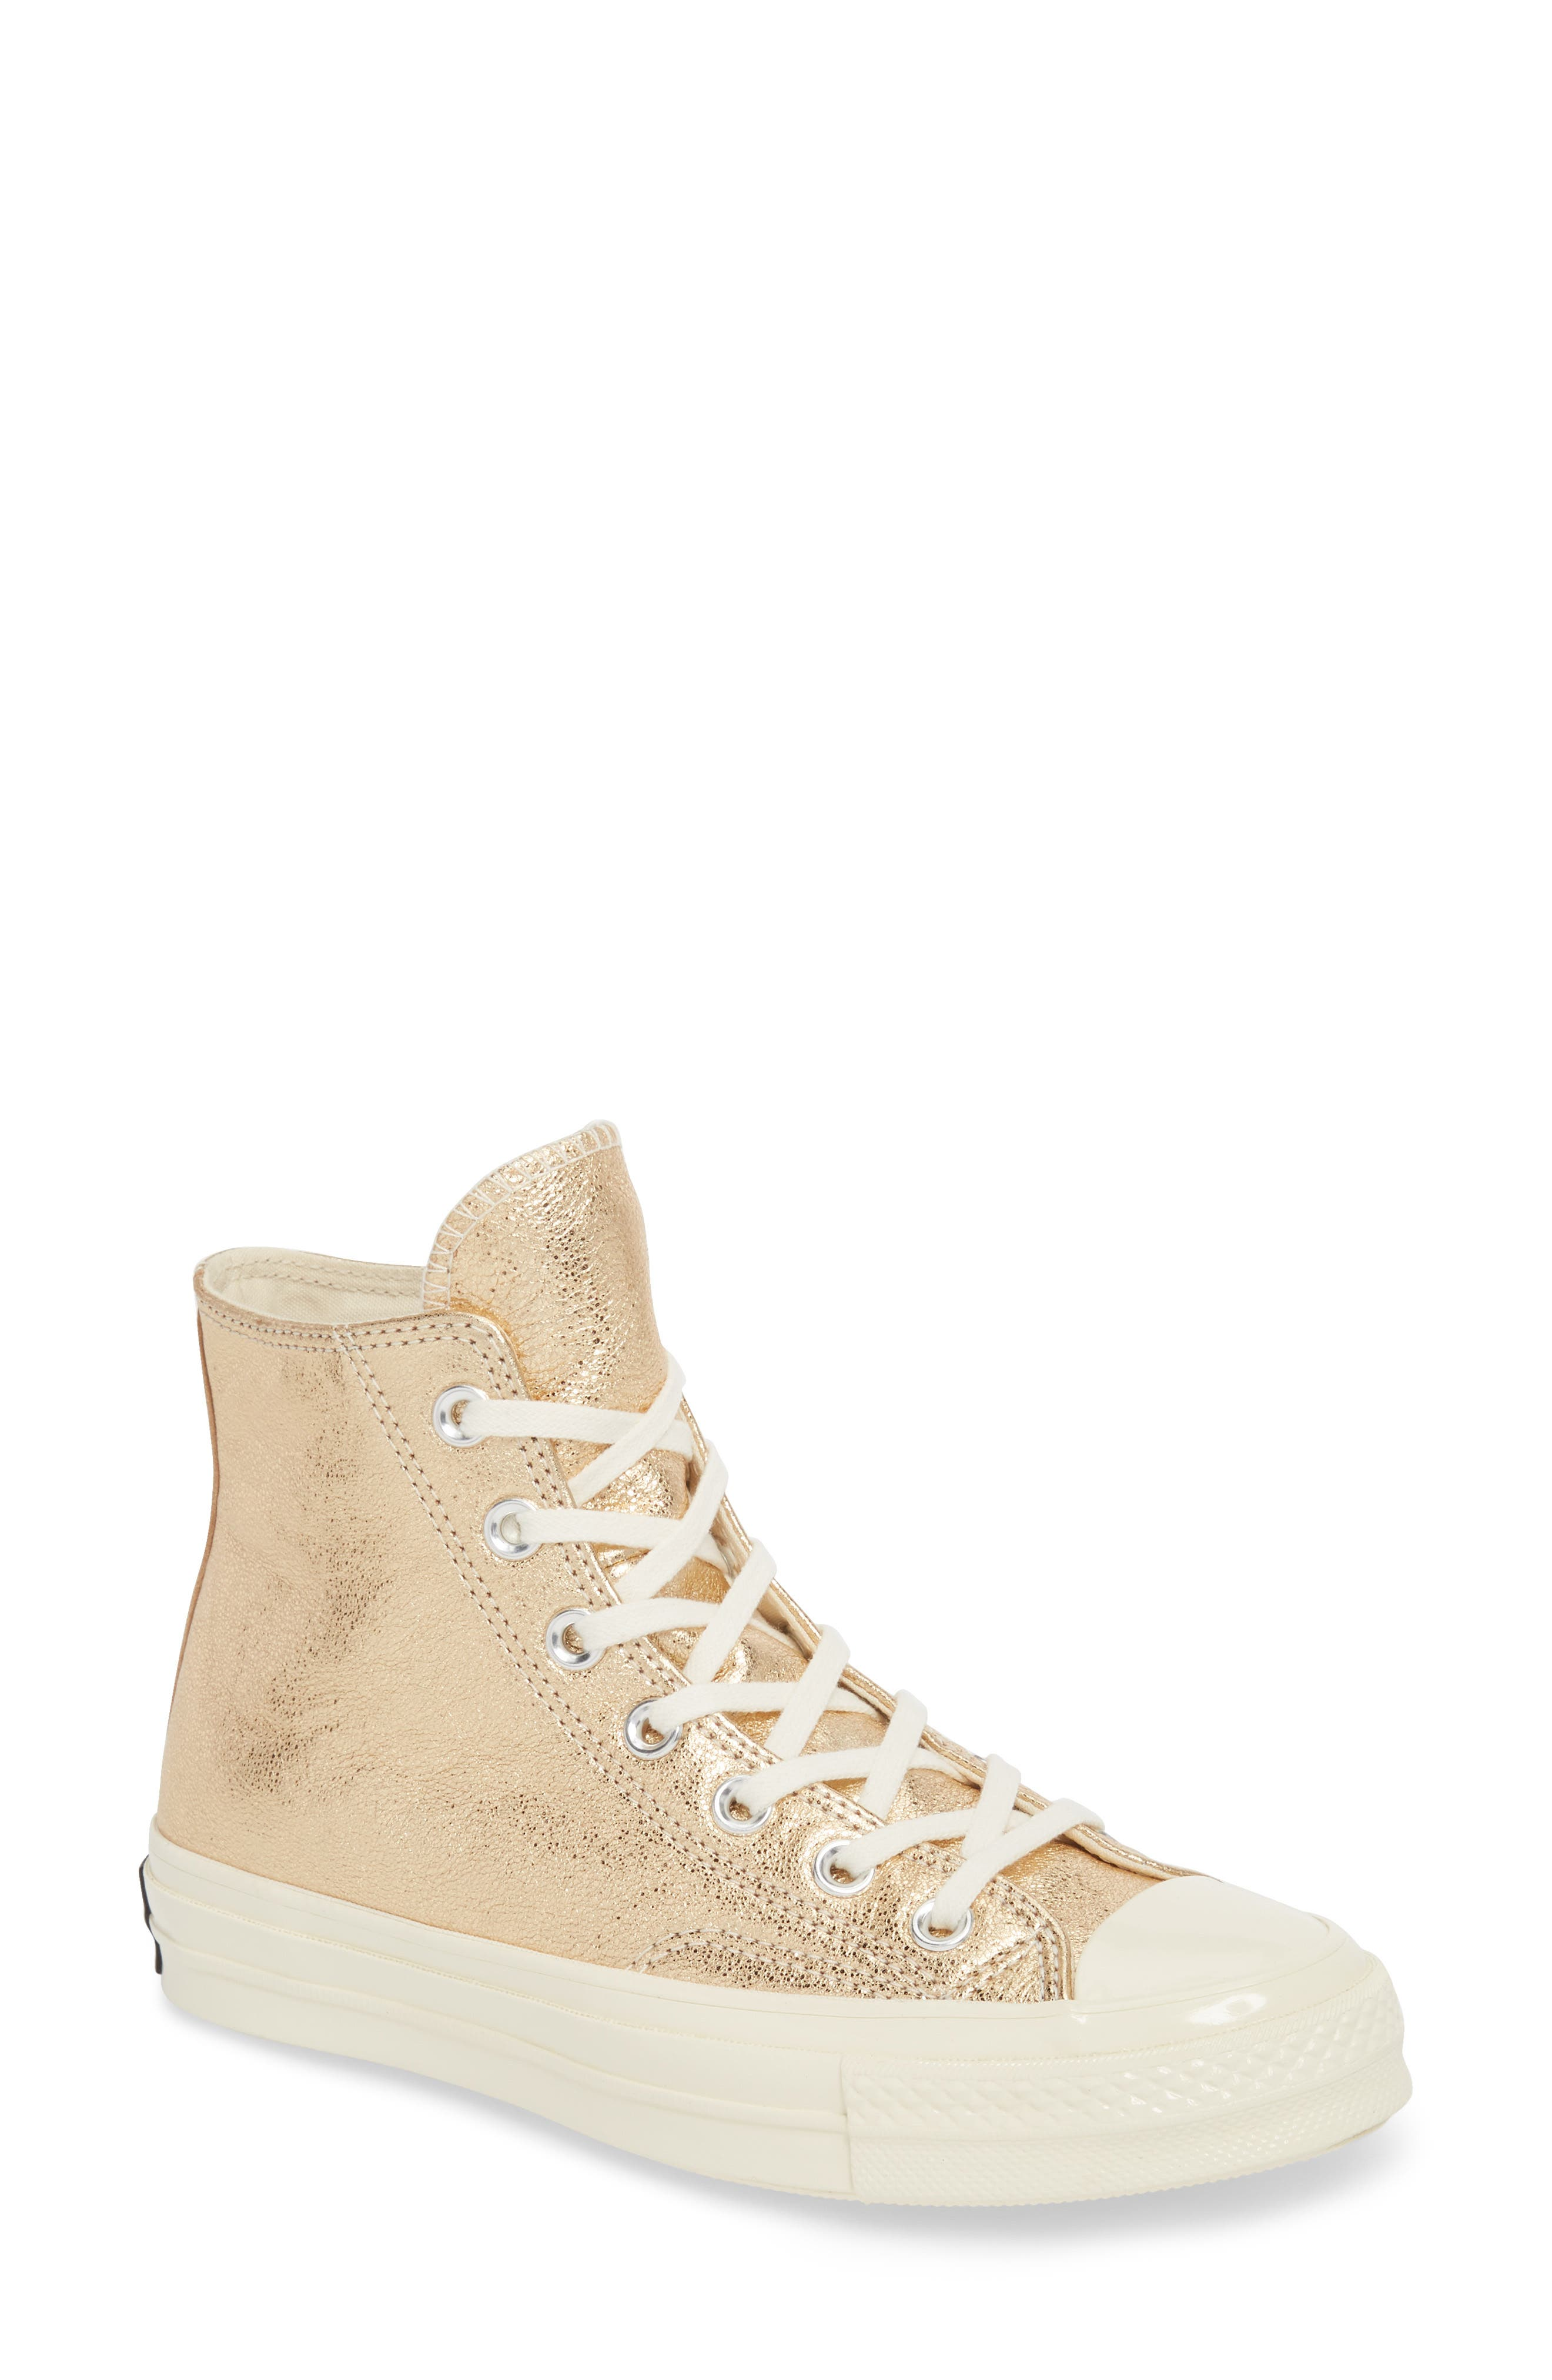 CHUCK TAYLOR ALL STAR HEAVY METAL 70 HIGH TOP SNEAKER